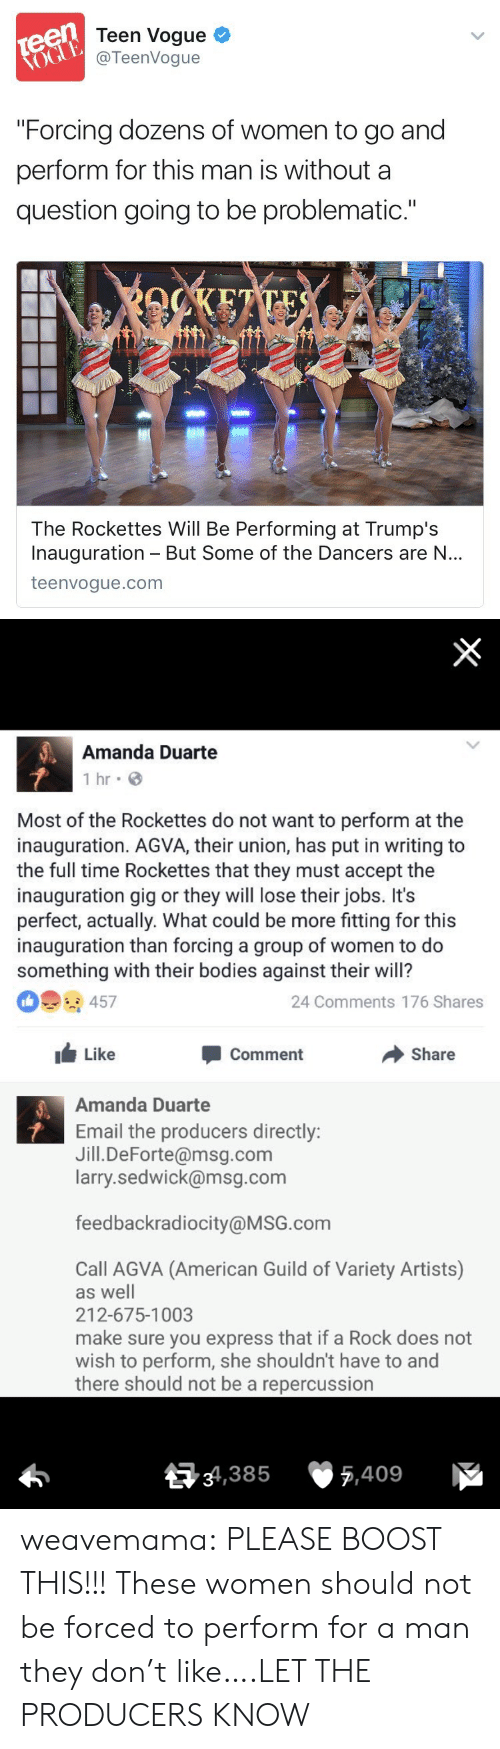 """guild: Teen Vogue  @TeenVogue  """"Forcing dozens of women to go and  perform for this man is without a  question going to be problematic.""""  The Rockettes Will Be Performing at Trump's  Inauguration But Some of the Dancers are N...  teenvogue.com   Amanda Duarte  1 hr G  Most of the Rockettes do not want to perform at the  inauguration. AGVA, their union, has put in writing to  the full time Rockettes that they must accept the  inauguration gig or they will lose their jobs. It's  perfect, actually. What could be more fitting for this  inauguration than forcing a group of women to do  something with their bodies against their will?  24 Comments 176 Shares  Like  Comment  Share  Amanda Duarte  Email the producers directly:  Jill.DeForte@msg.com  larry.sedwick@msg.com  feedbackradiocity@MSG.com  Call AGVA (American Guild of Variety Artists)  as well  212-675-1003  make sure you express that if a Rock does not  wish to perform, she shouldn't have to and  there should not be a repercussion  34,385  5,409 weavemama: PLEASE BOOST THIS!!!   These women should not be forced to perform for a man they don't like….LET THE PRODUCERS KNOW"""